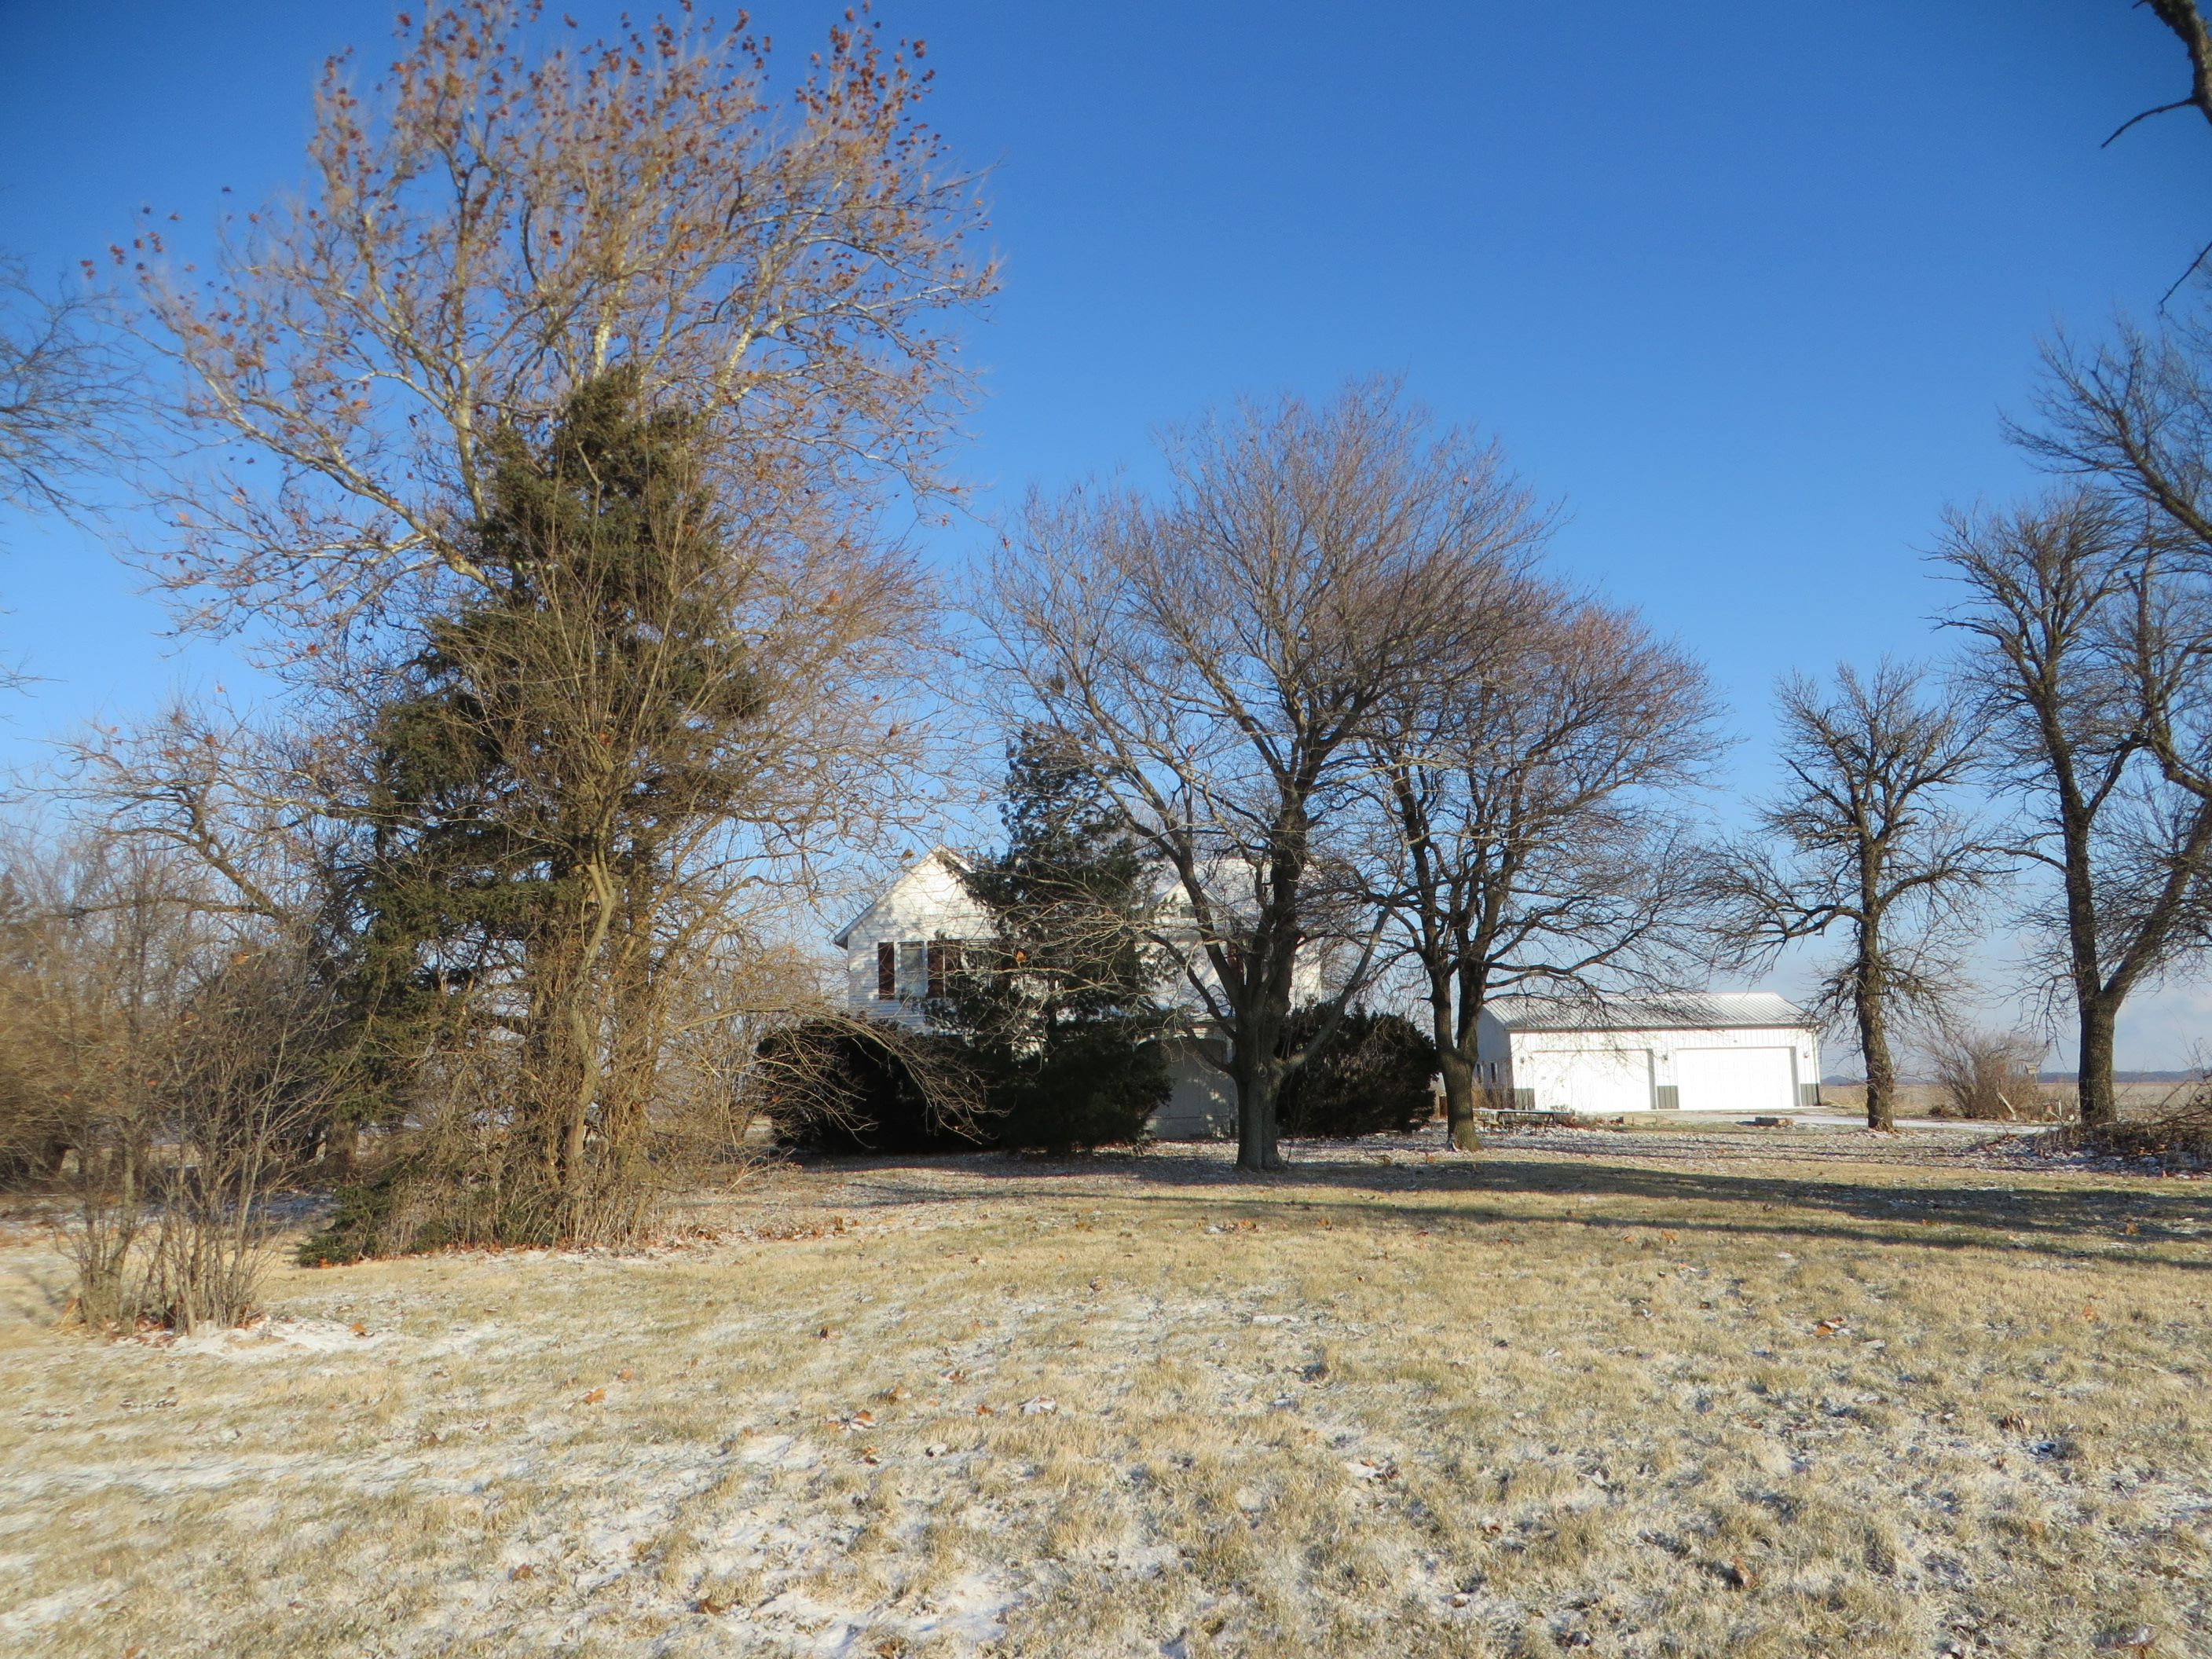 6050 E Livingston Rd, Reddick, IL 60961